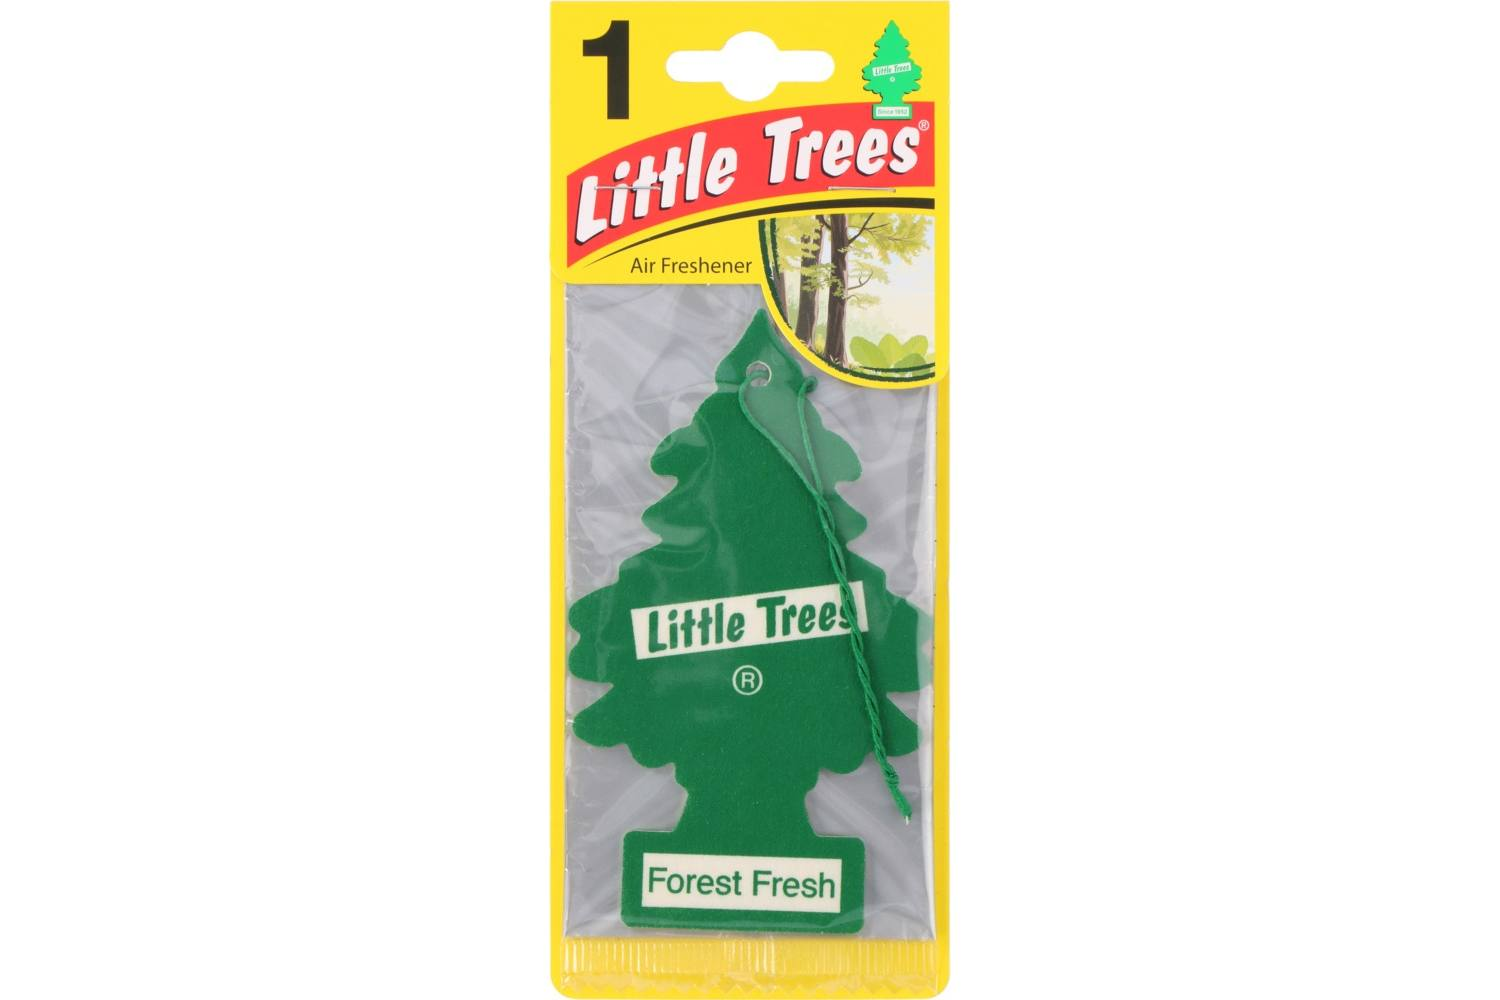 Air freshener, Little tree, forest fresh 1